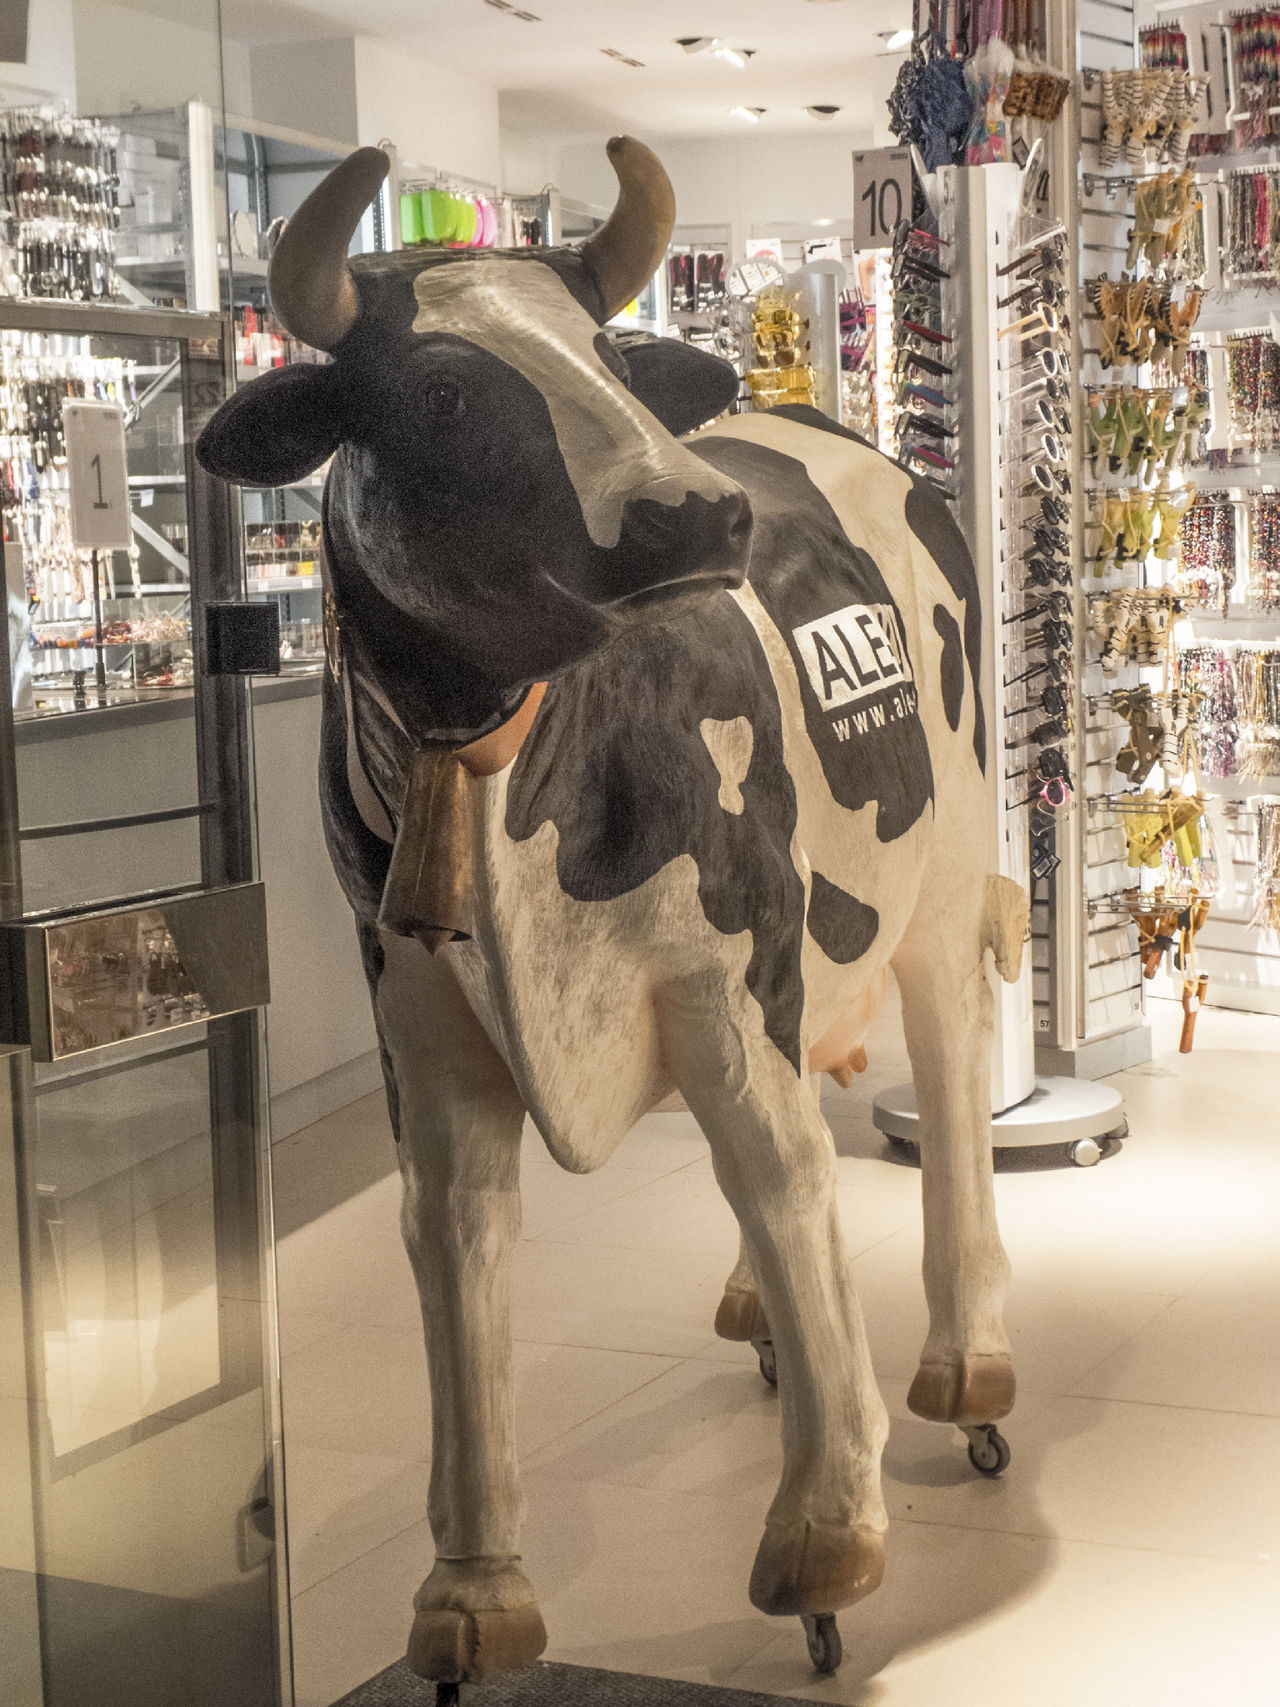 Hola Advertisement Advertising Signs Animal Themes Bovine Bovine Beauty Day Display Fake Bovine Fake Cow Full Length Indoor Cow Indoors  Mammal No People Rear View Standing